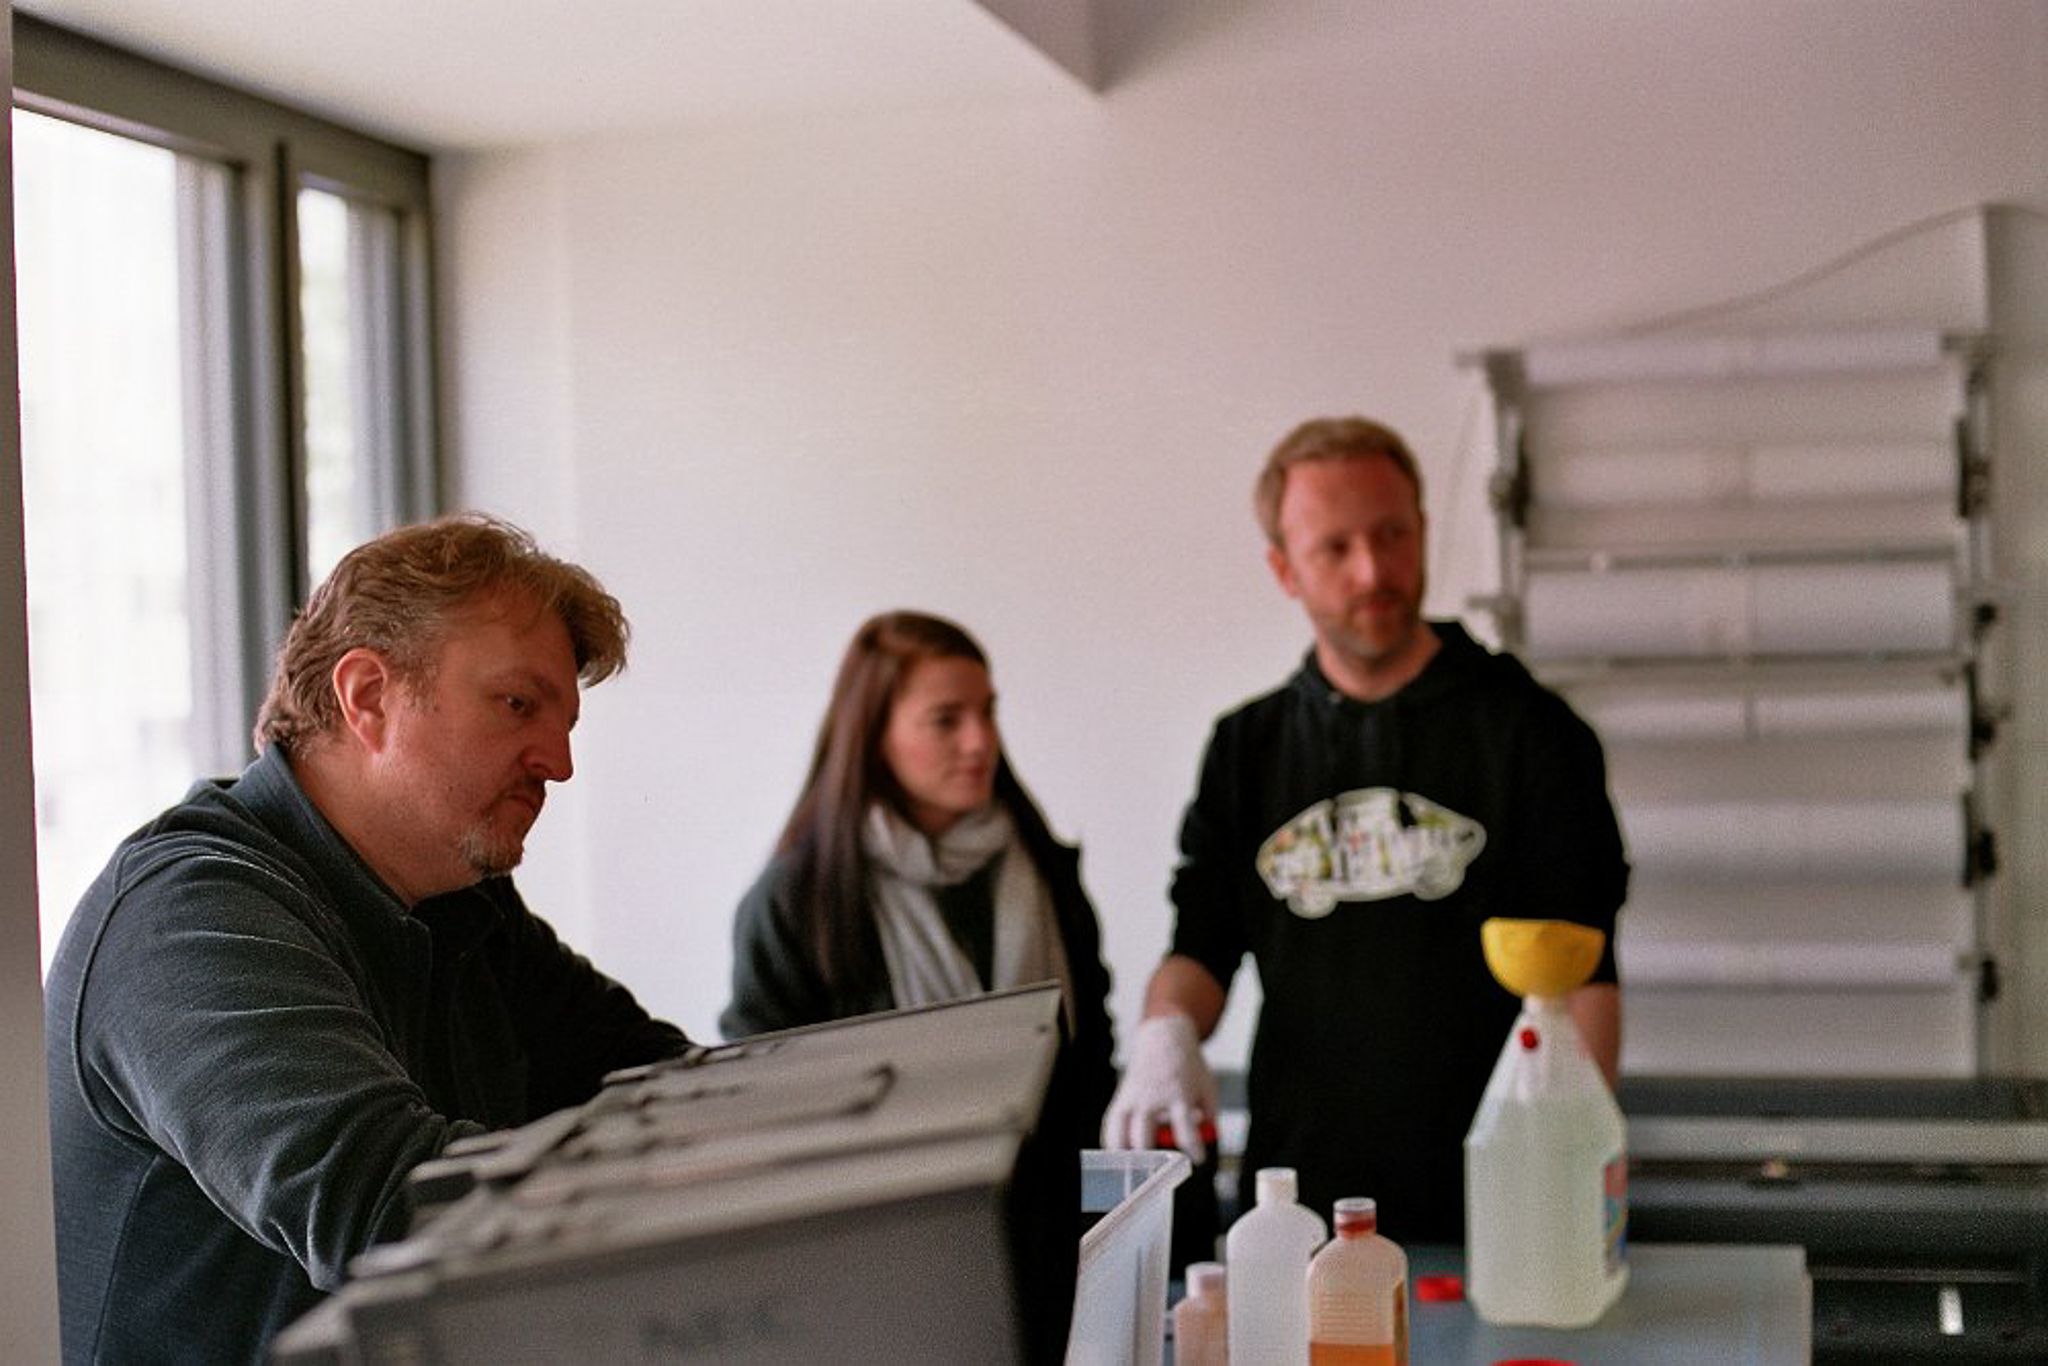 Analog-Extrem-Workshop-011.jpg